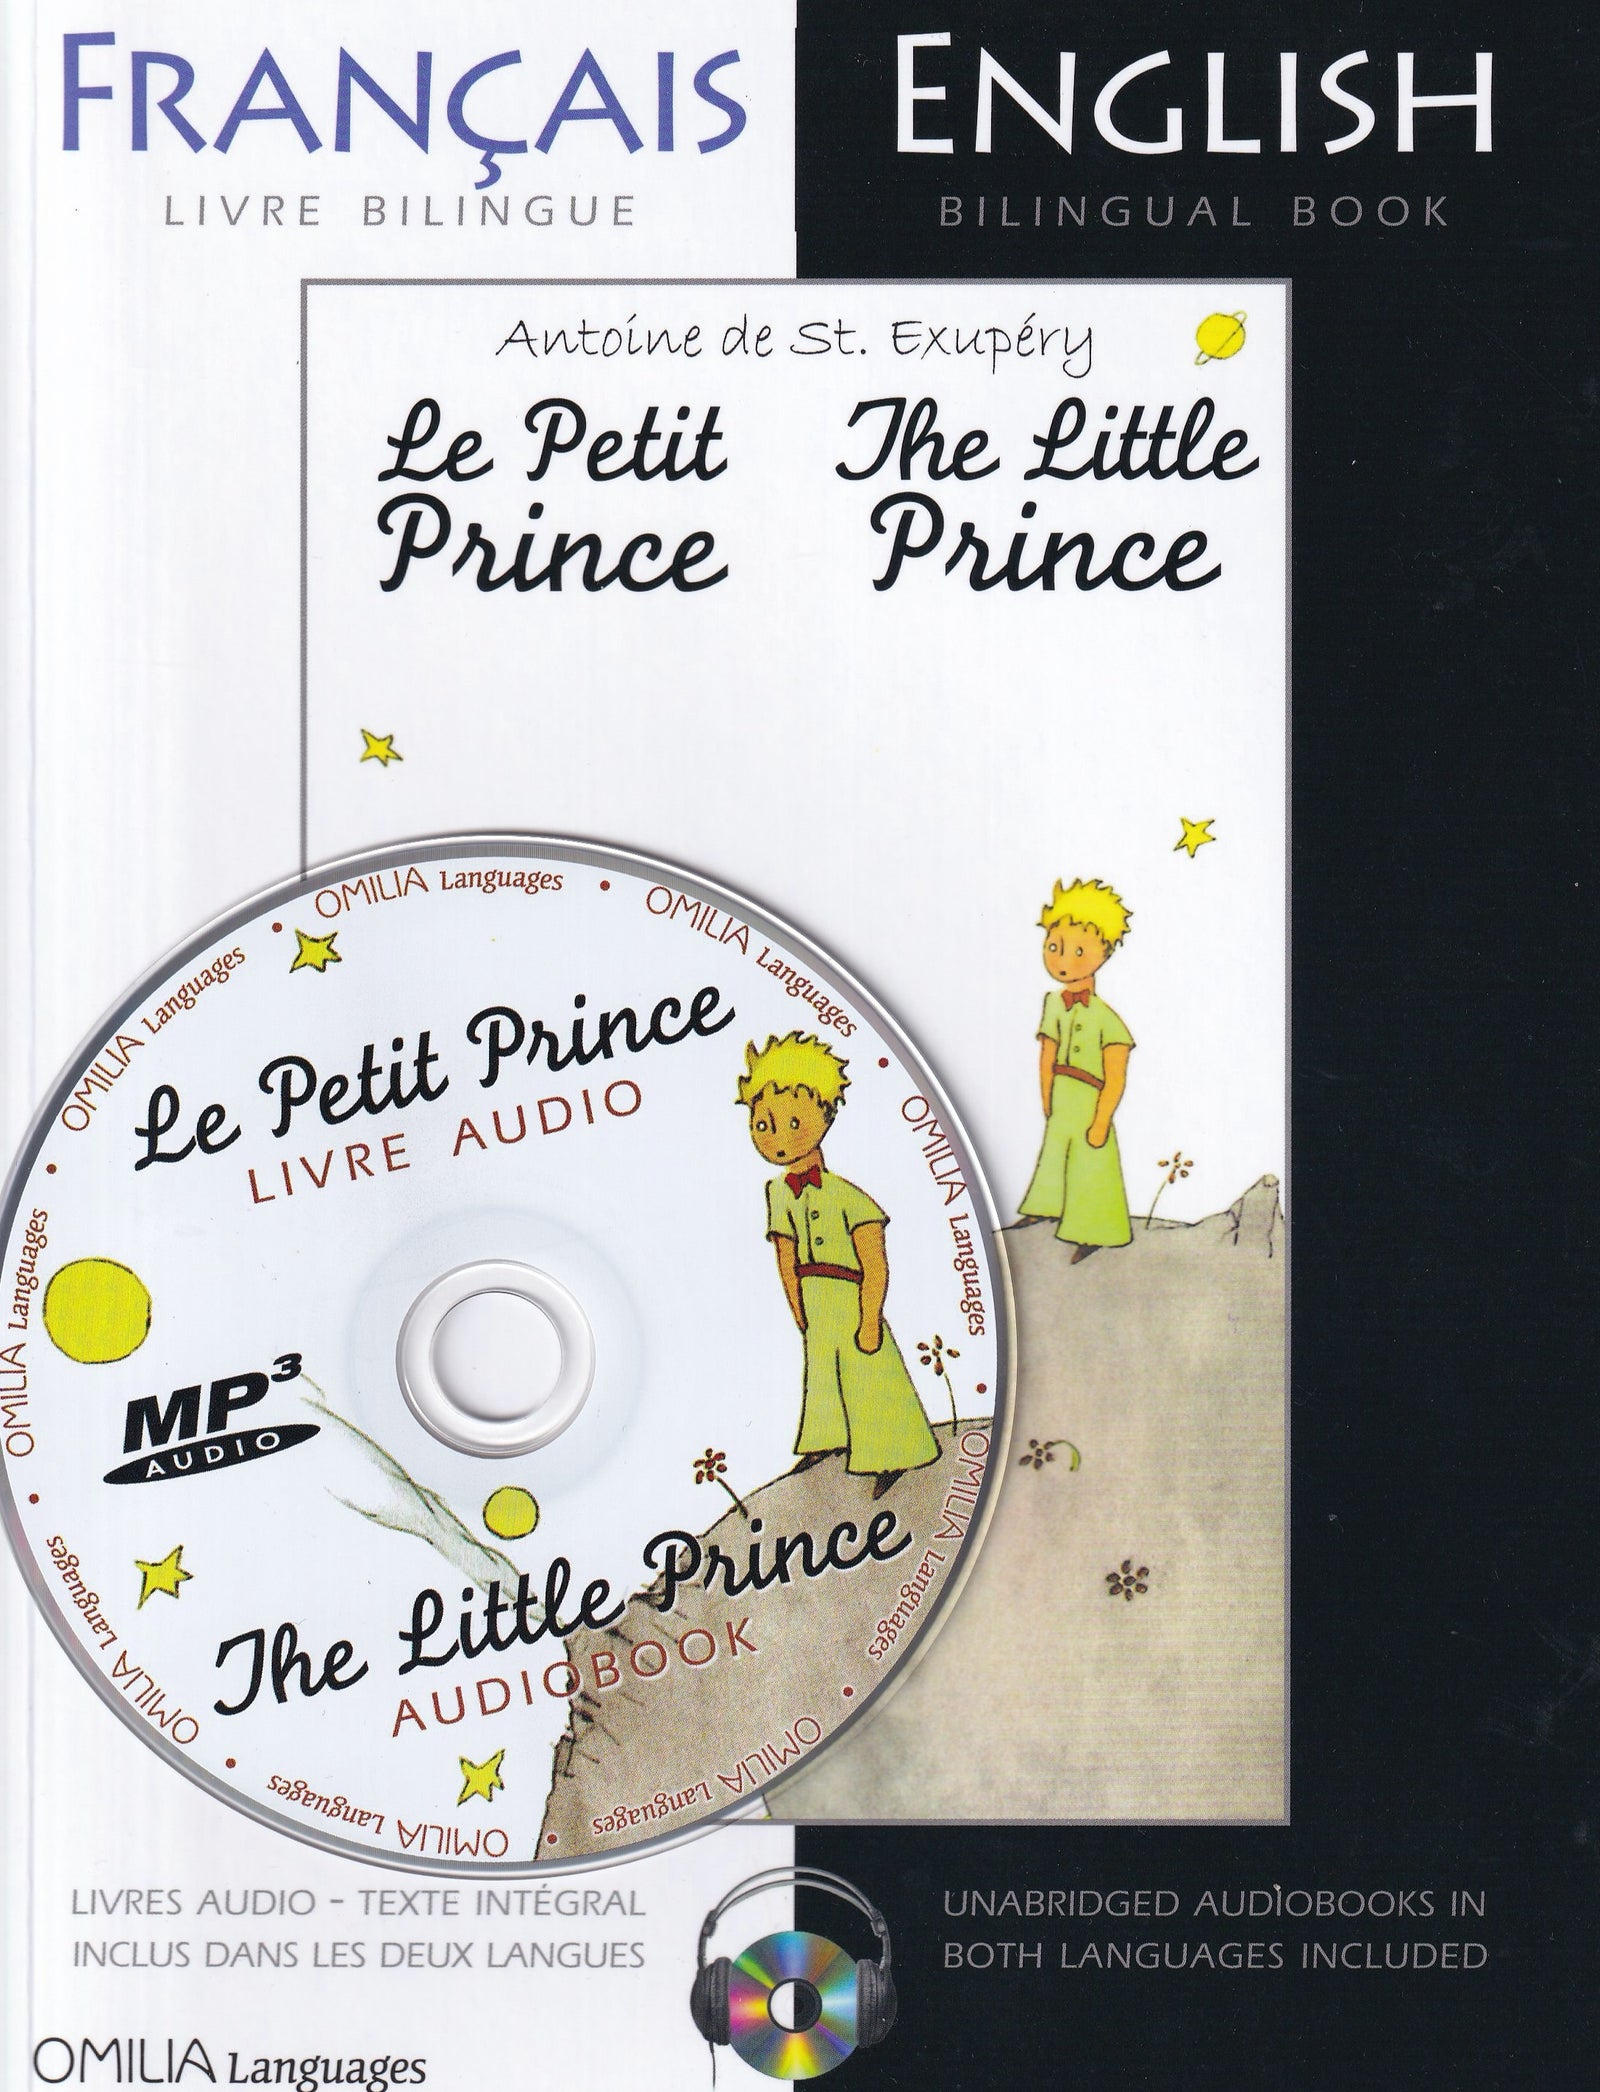 The Little Prince: French/English Bilingual Reader. Book and free audio CD - 9780956721594 - front cover